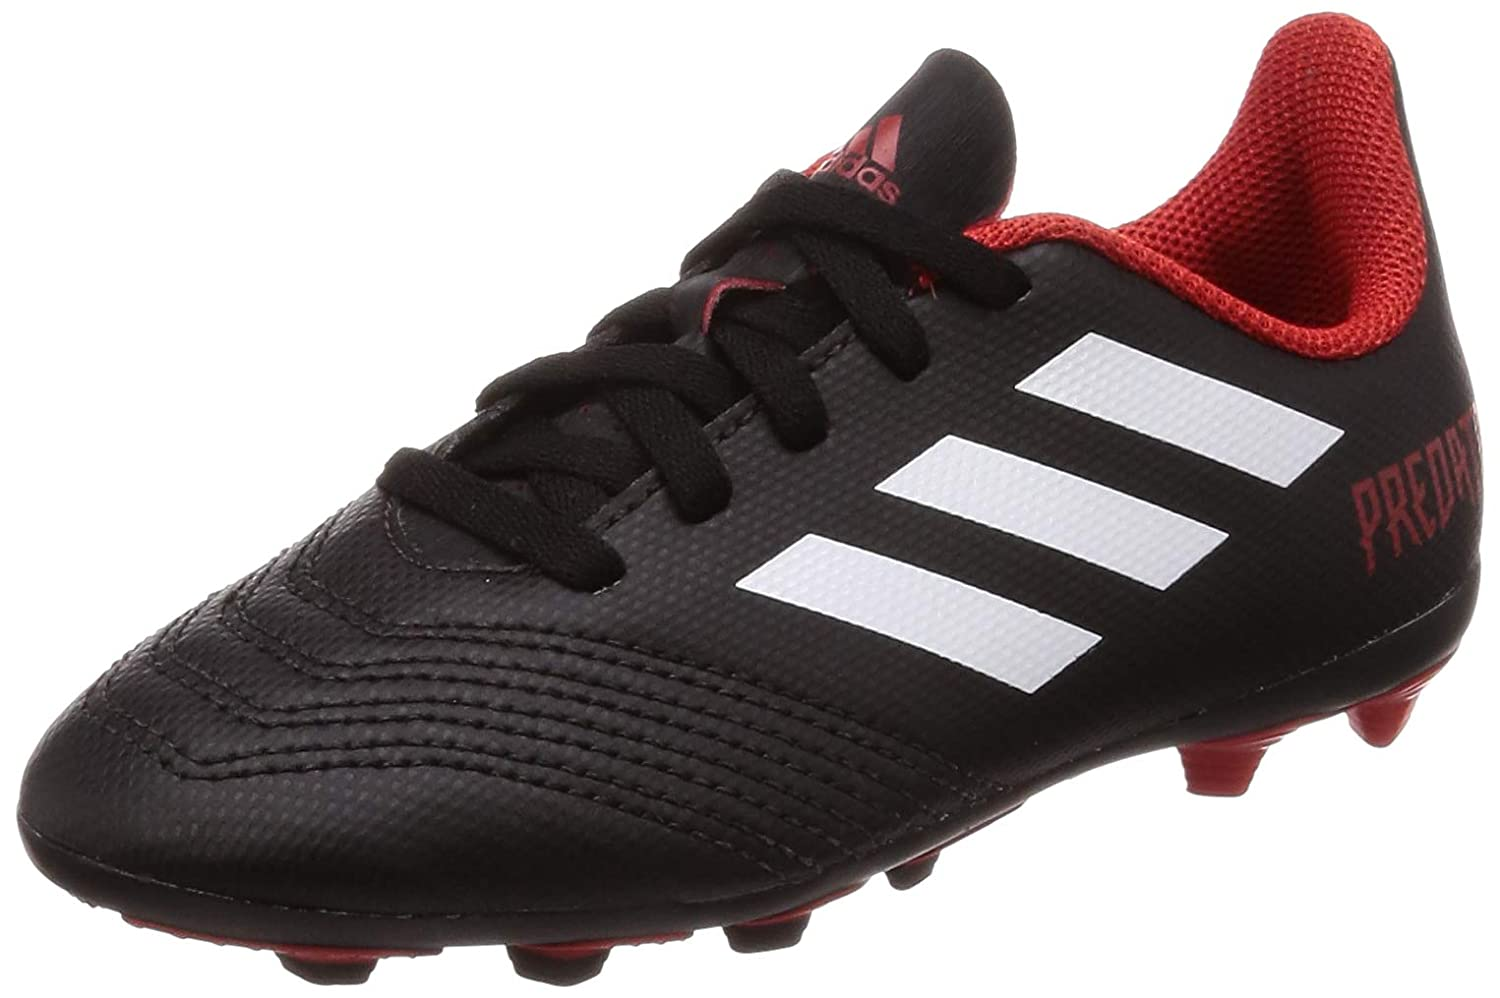 adidas Kids Shoes Boys Football Predator 18.4 Flexible Ground Soccer New DB2323